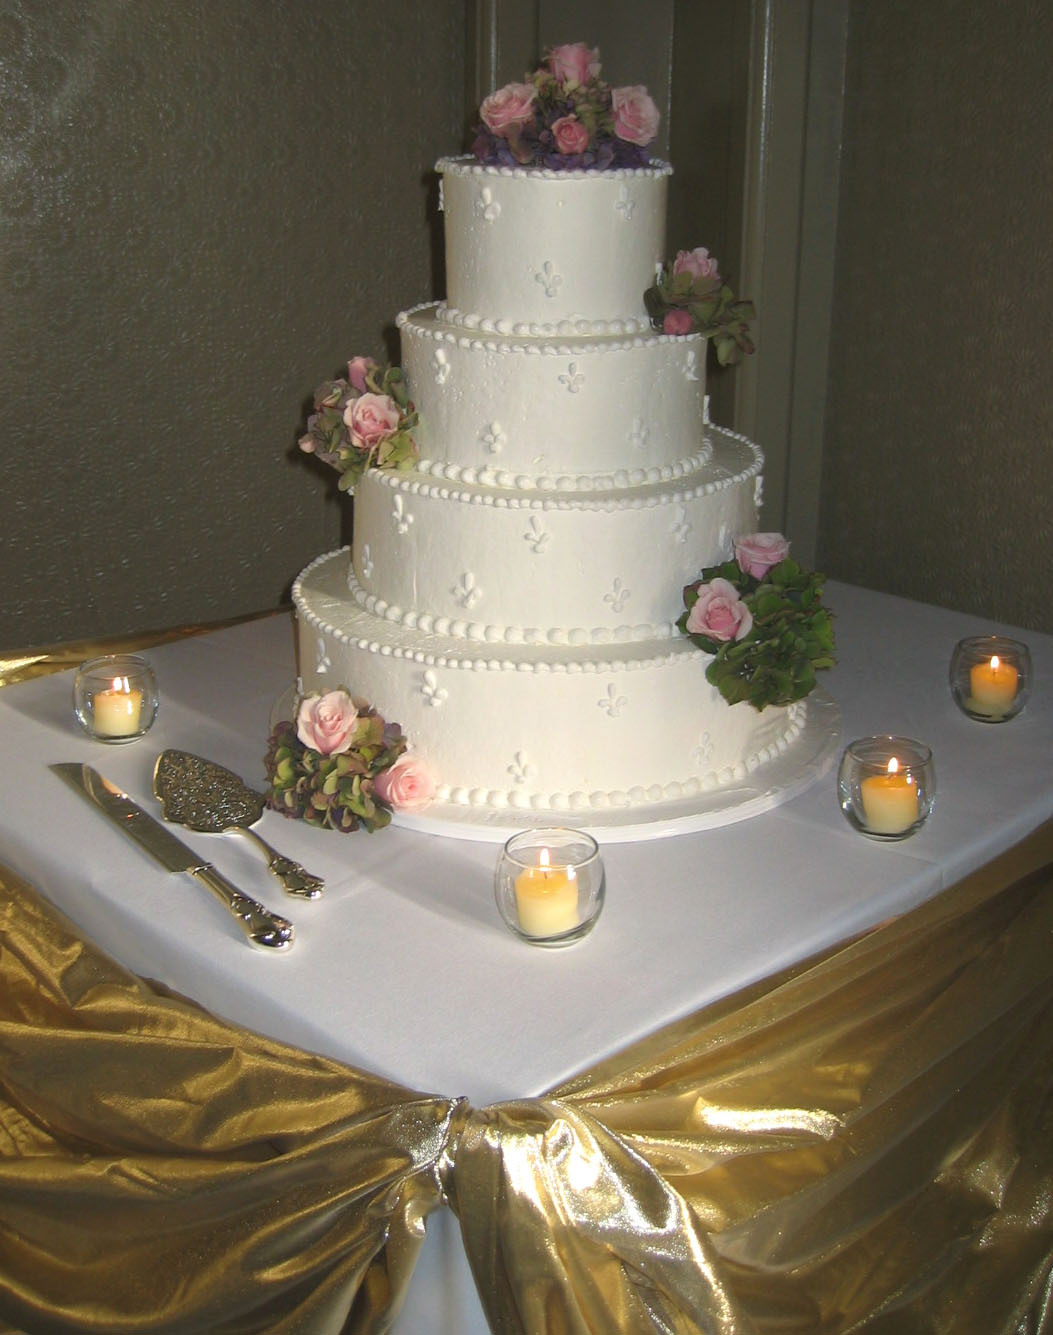 Flowers & Decor, Cakes, pink, cake, Flowers, Roses, Cake cutting, Hydrangea, An impressive event, 4 tier cake